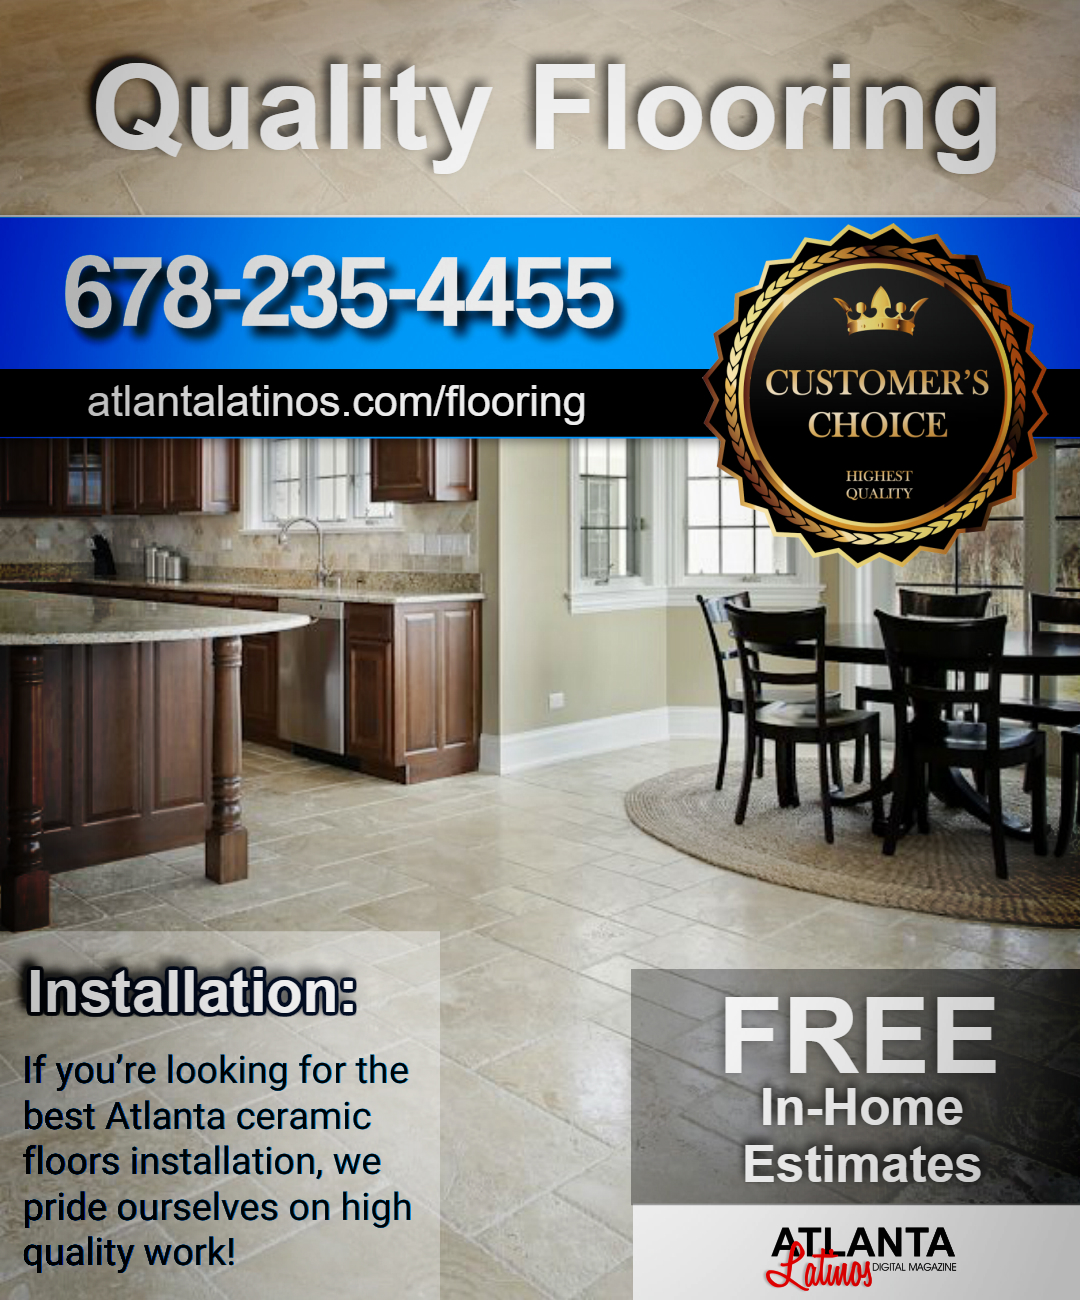 atlanta-ceramic-tiled-flooring-quality-porcelain-floors